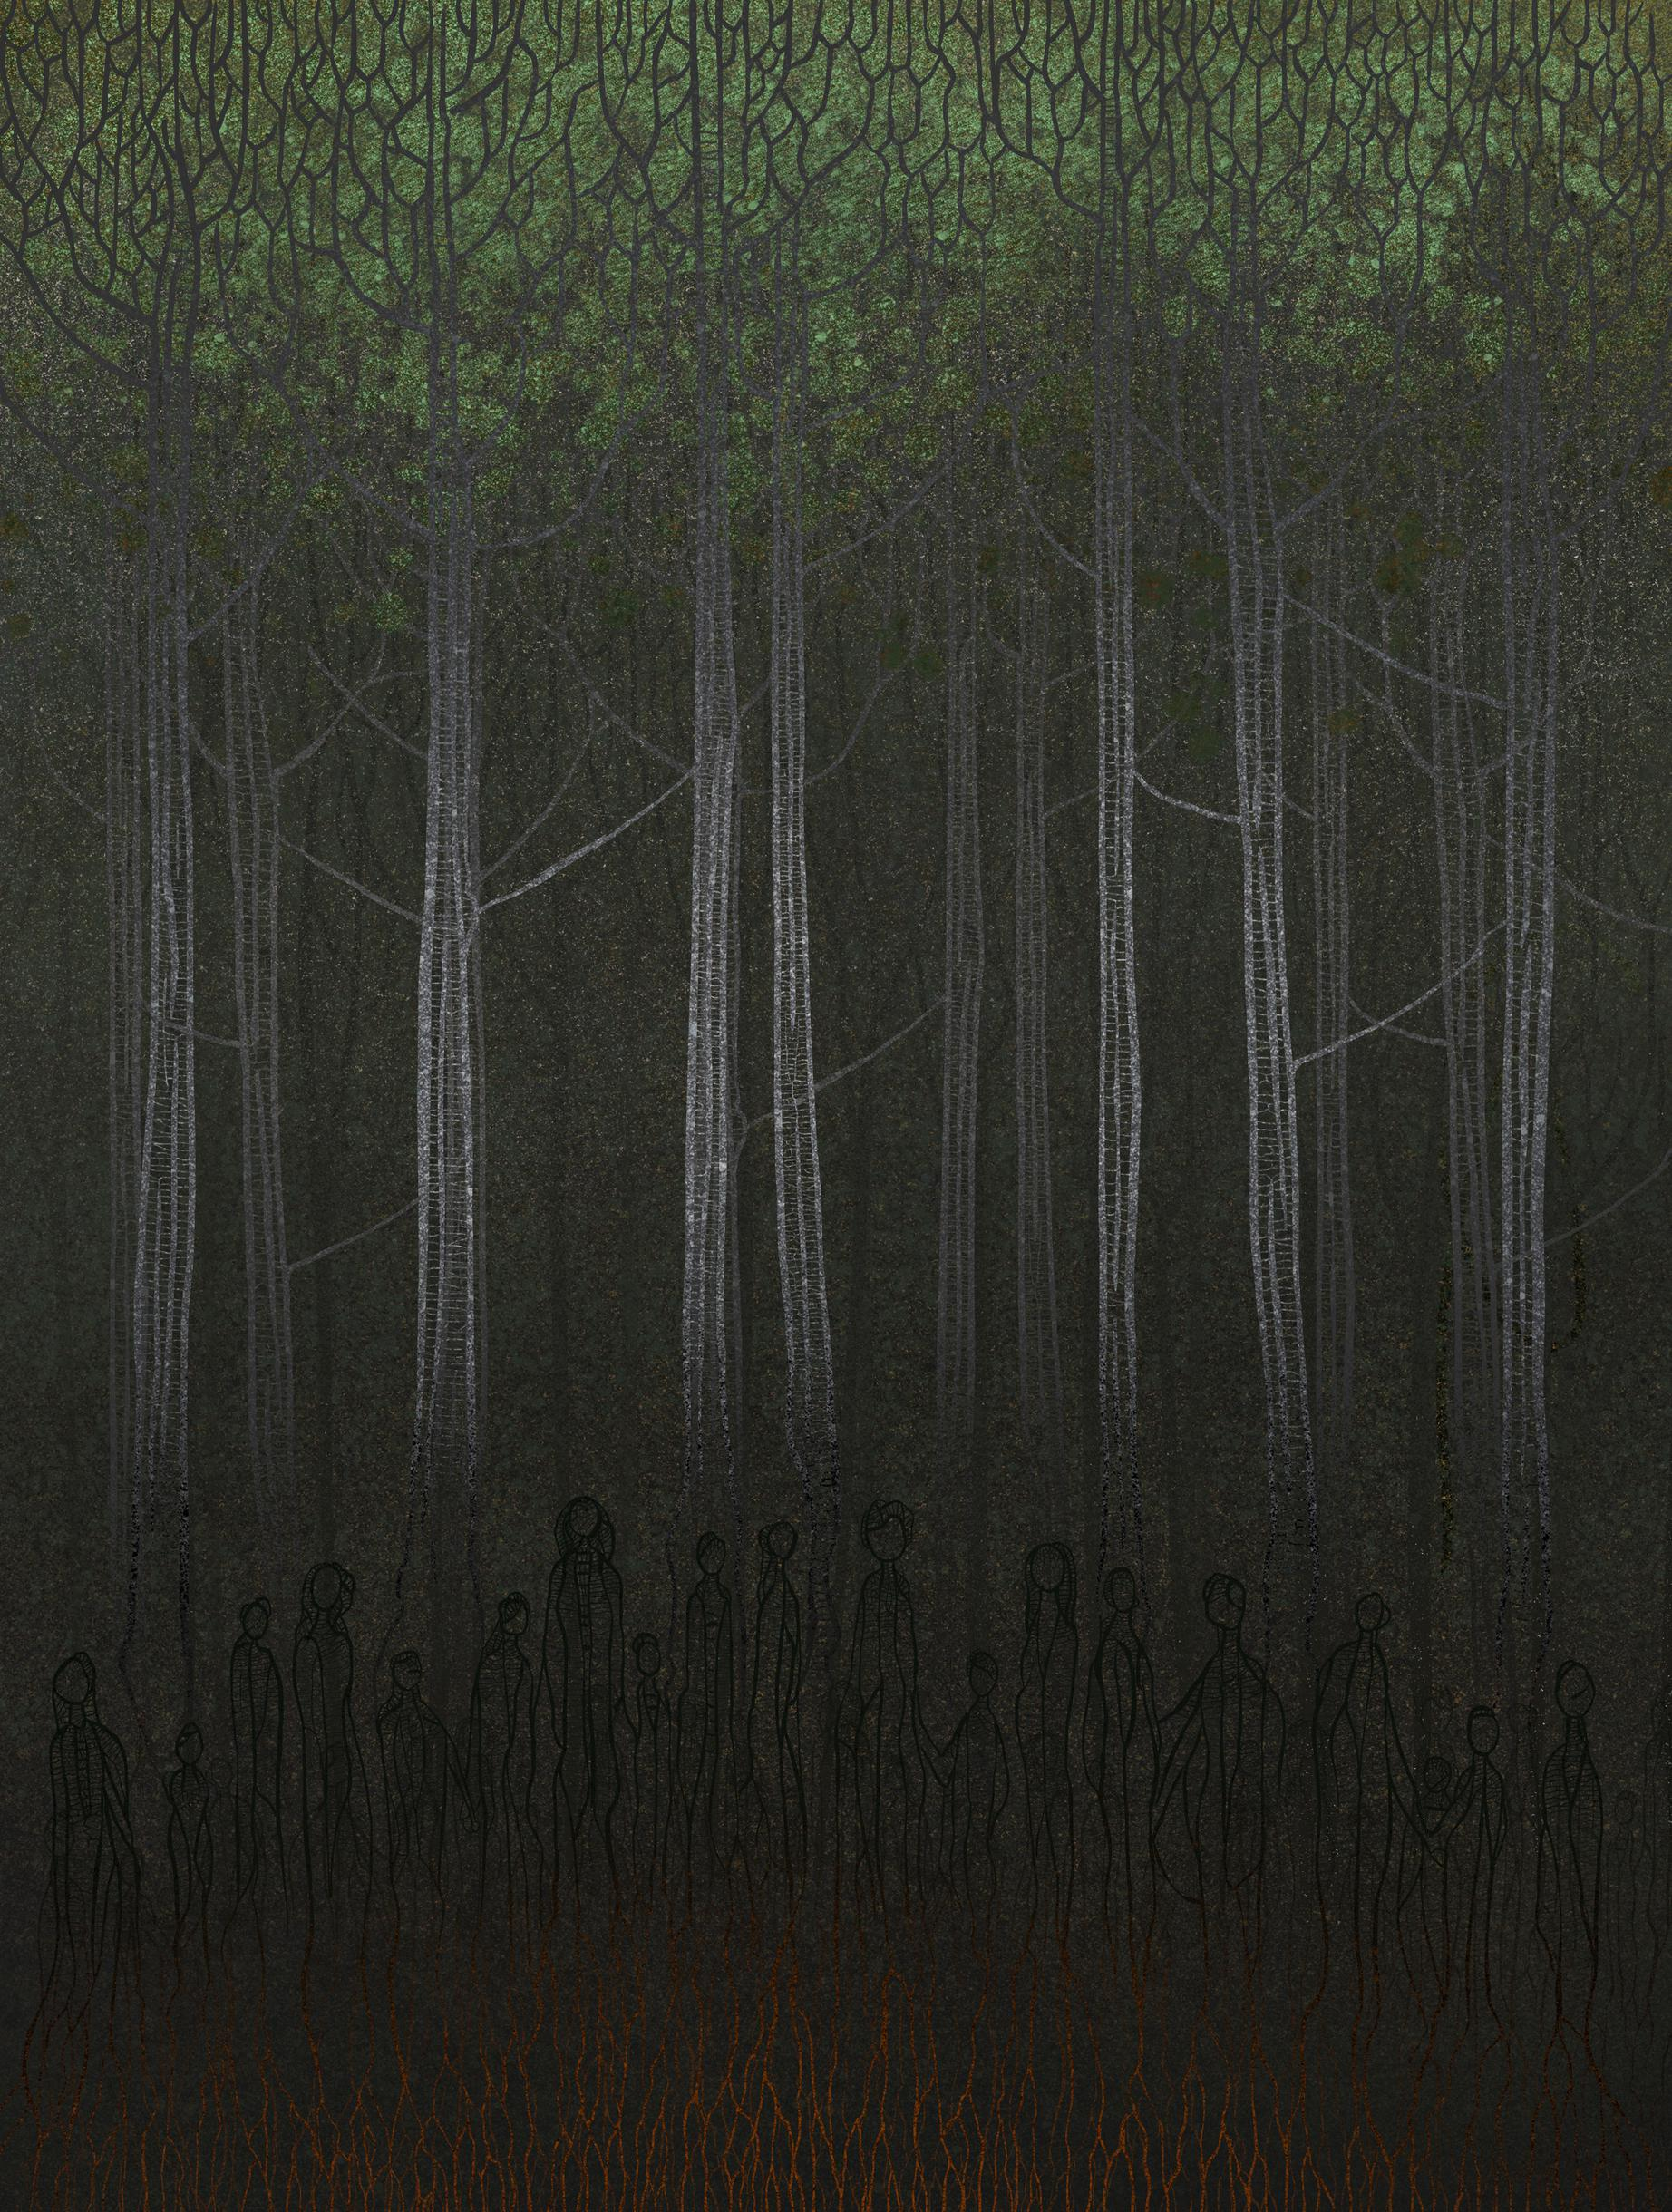 holocaust, ww2, world war II, paintings, forests, sacred minimalism